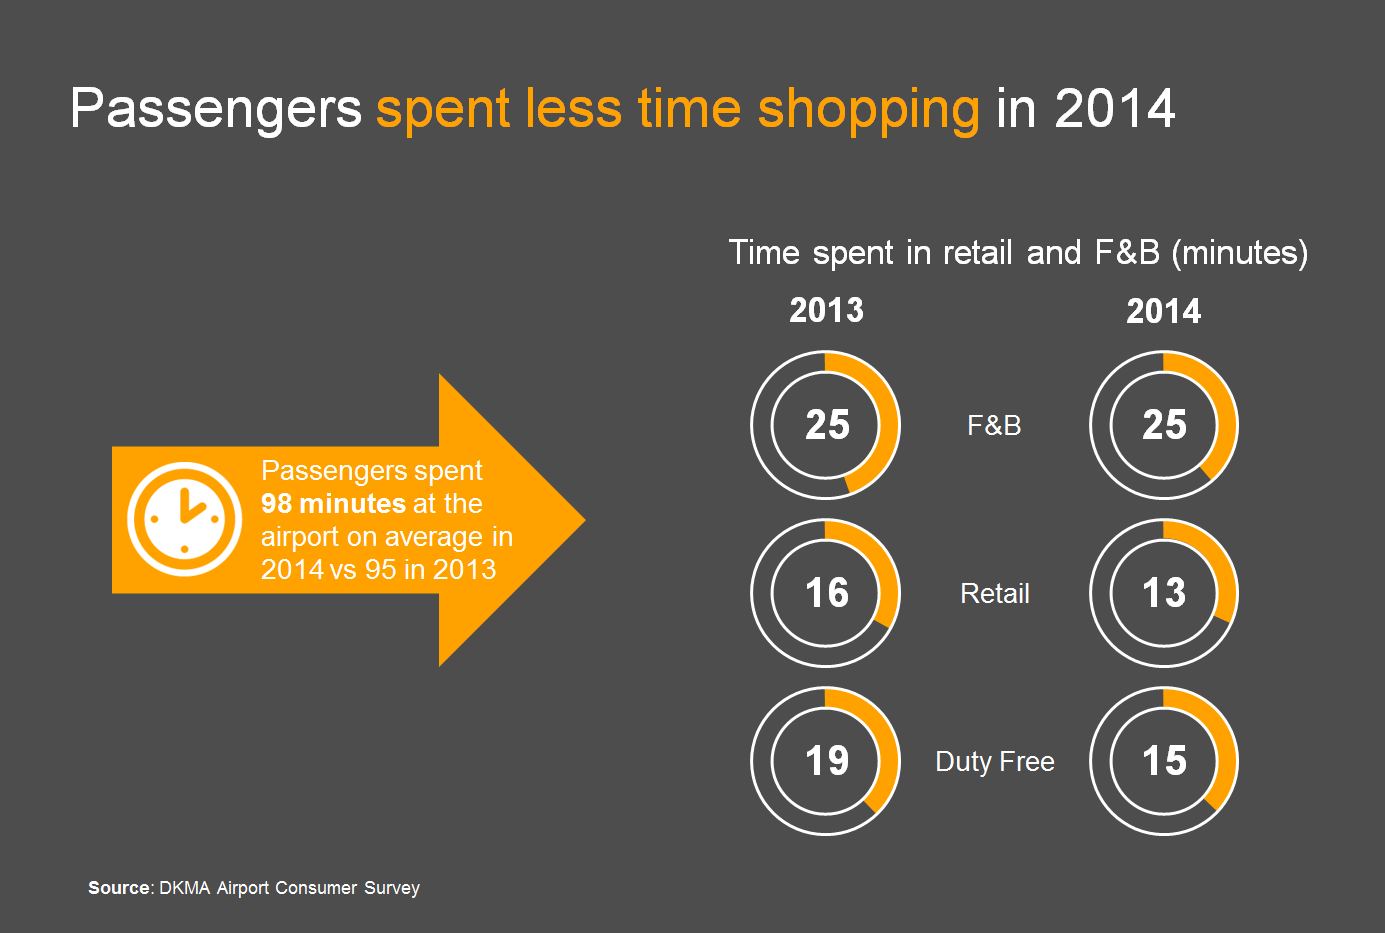 Time spent shopping